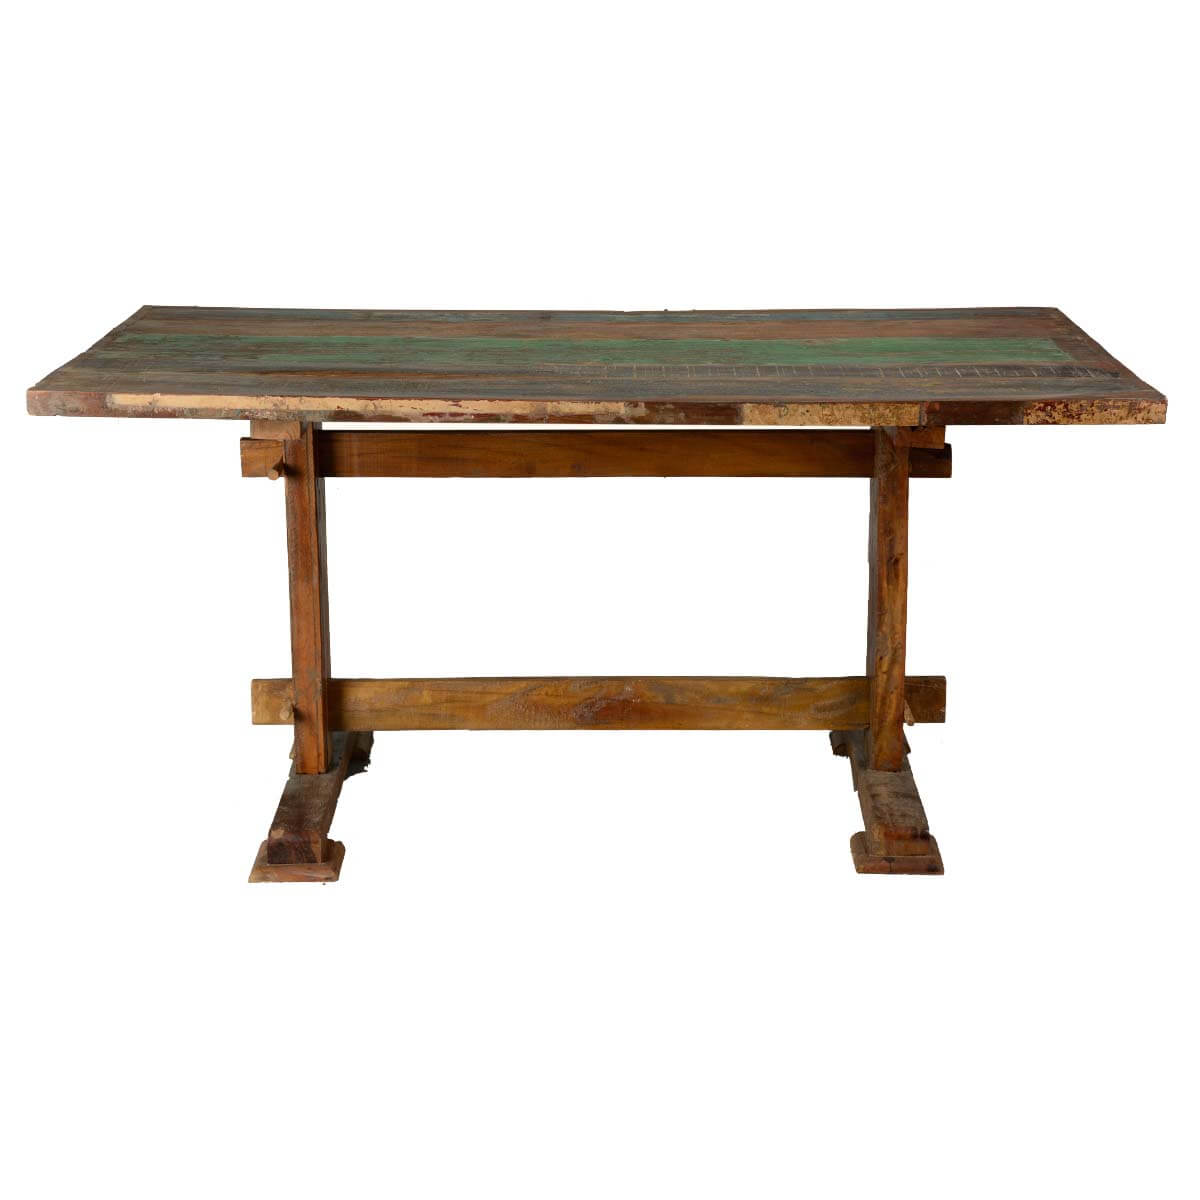 Reclaimed hardwood classic trestle pedestal dining table for Trestle dining table